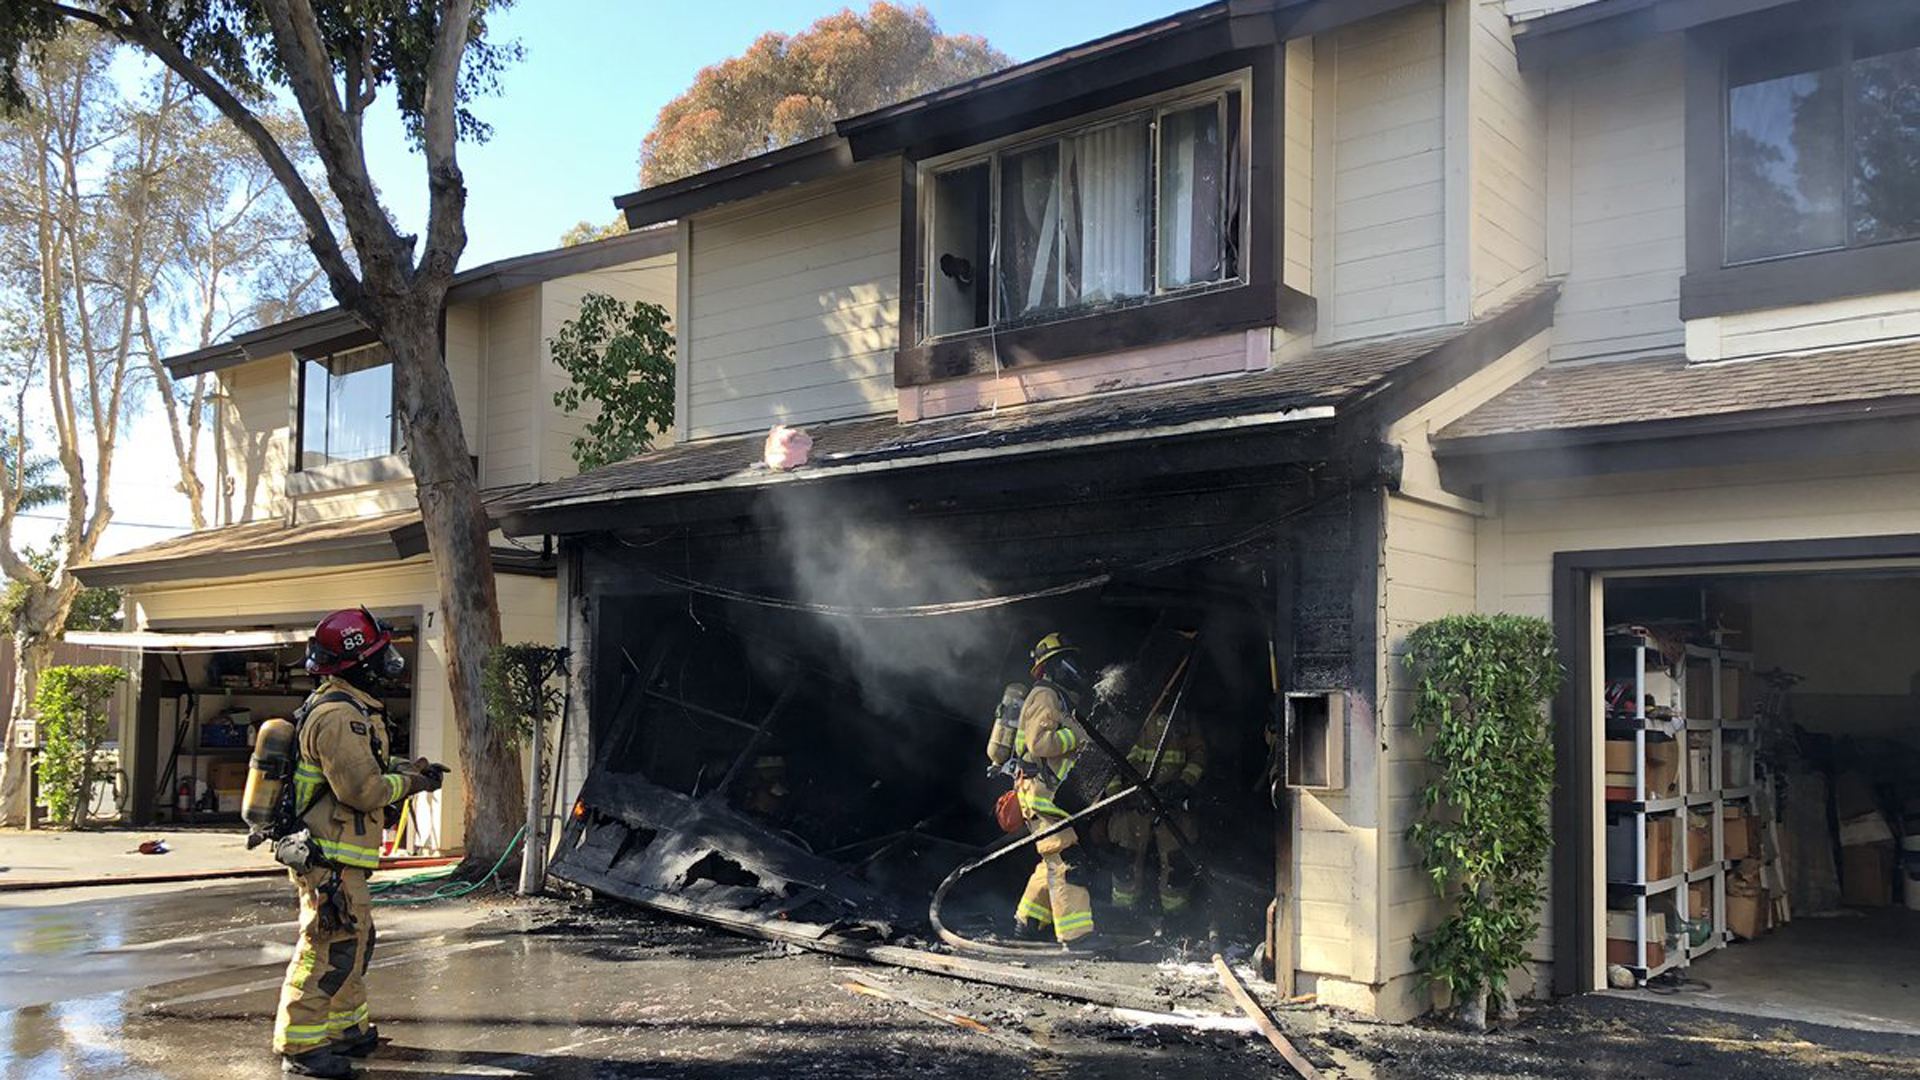 Firefighters quickly extinguished a fire at an apartment building in Costa Mesa on March 15, 2019. (Credit: Costa Mesa Fire Department)